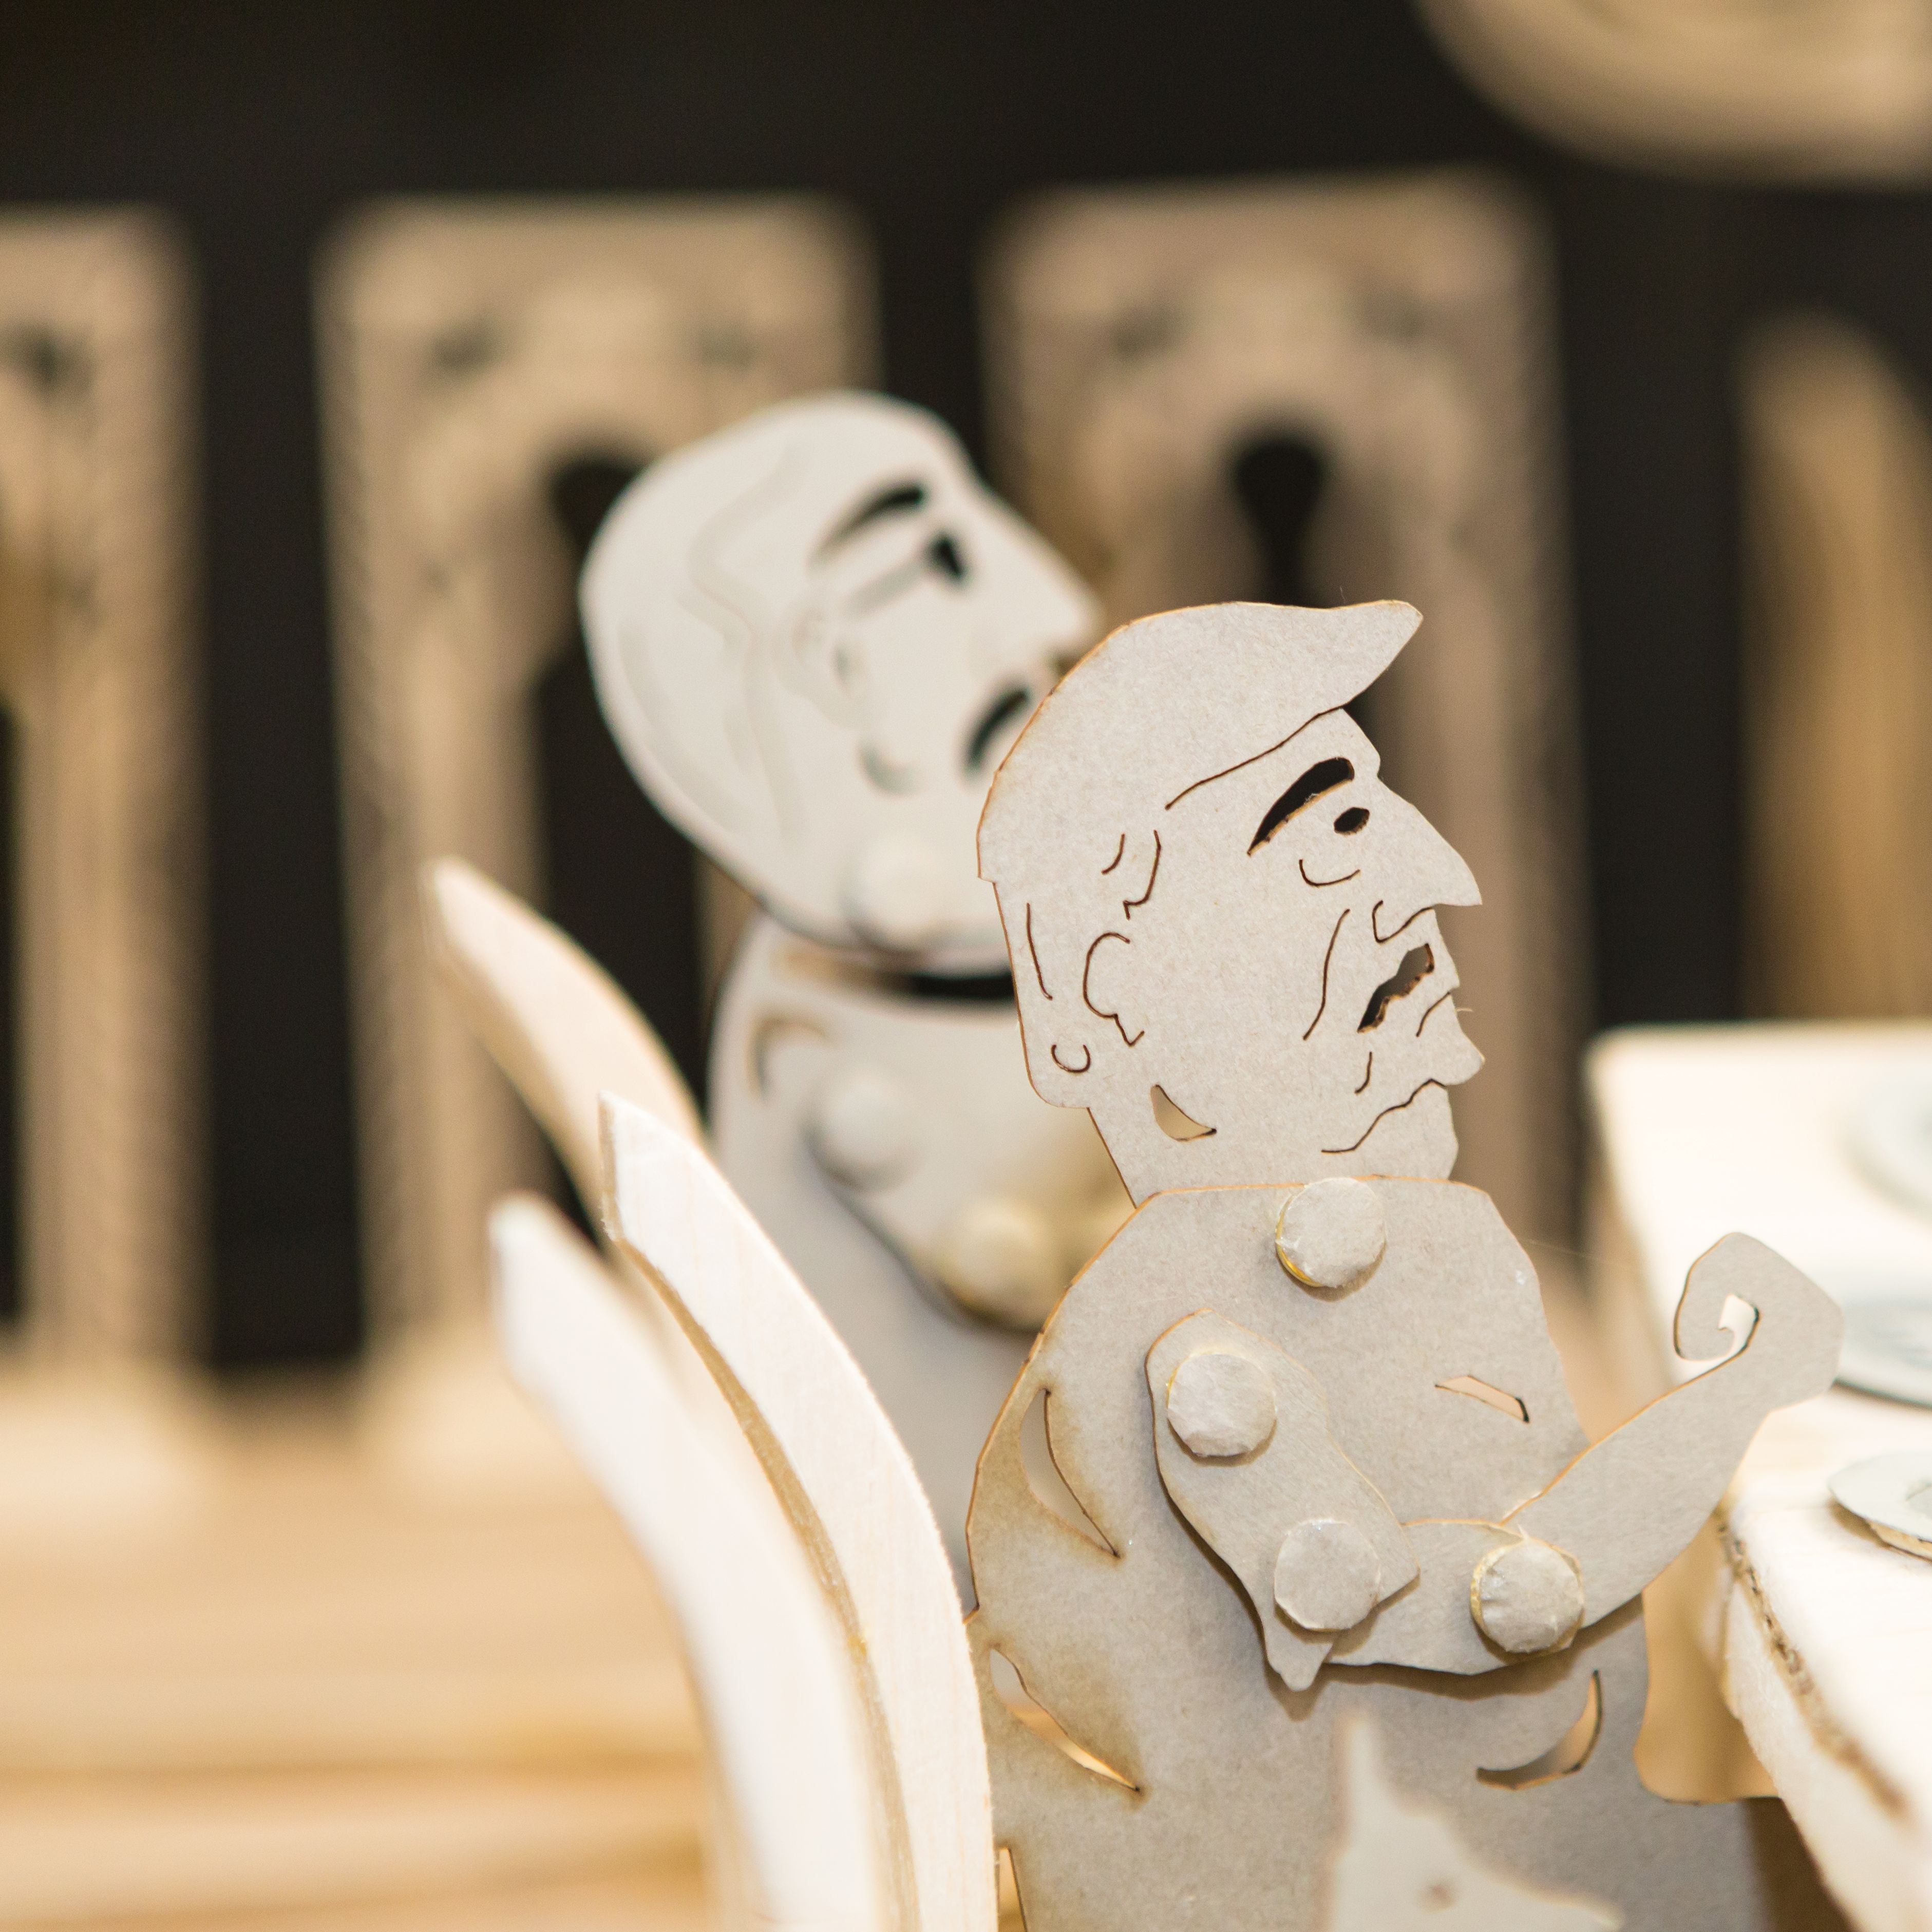 Cardboard characters at a dinner table - part of BA Live Events and Television course project